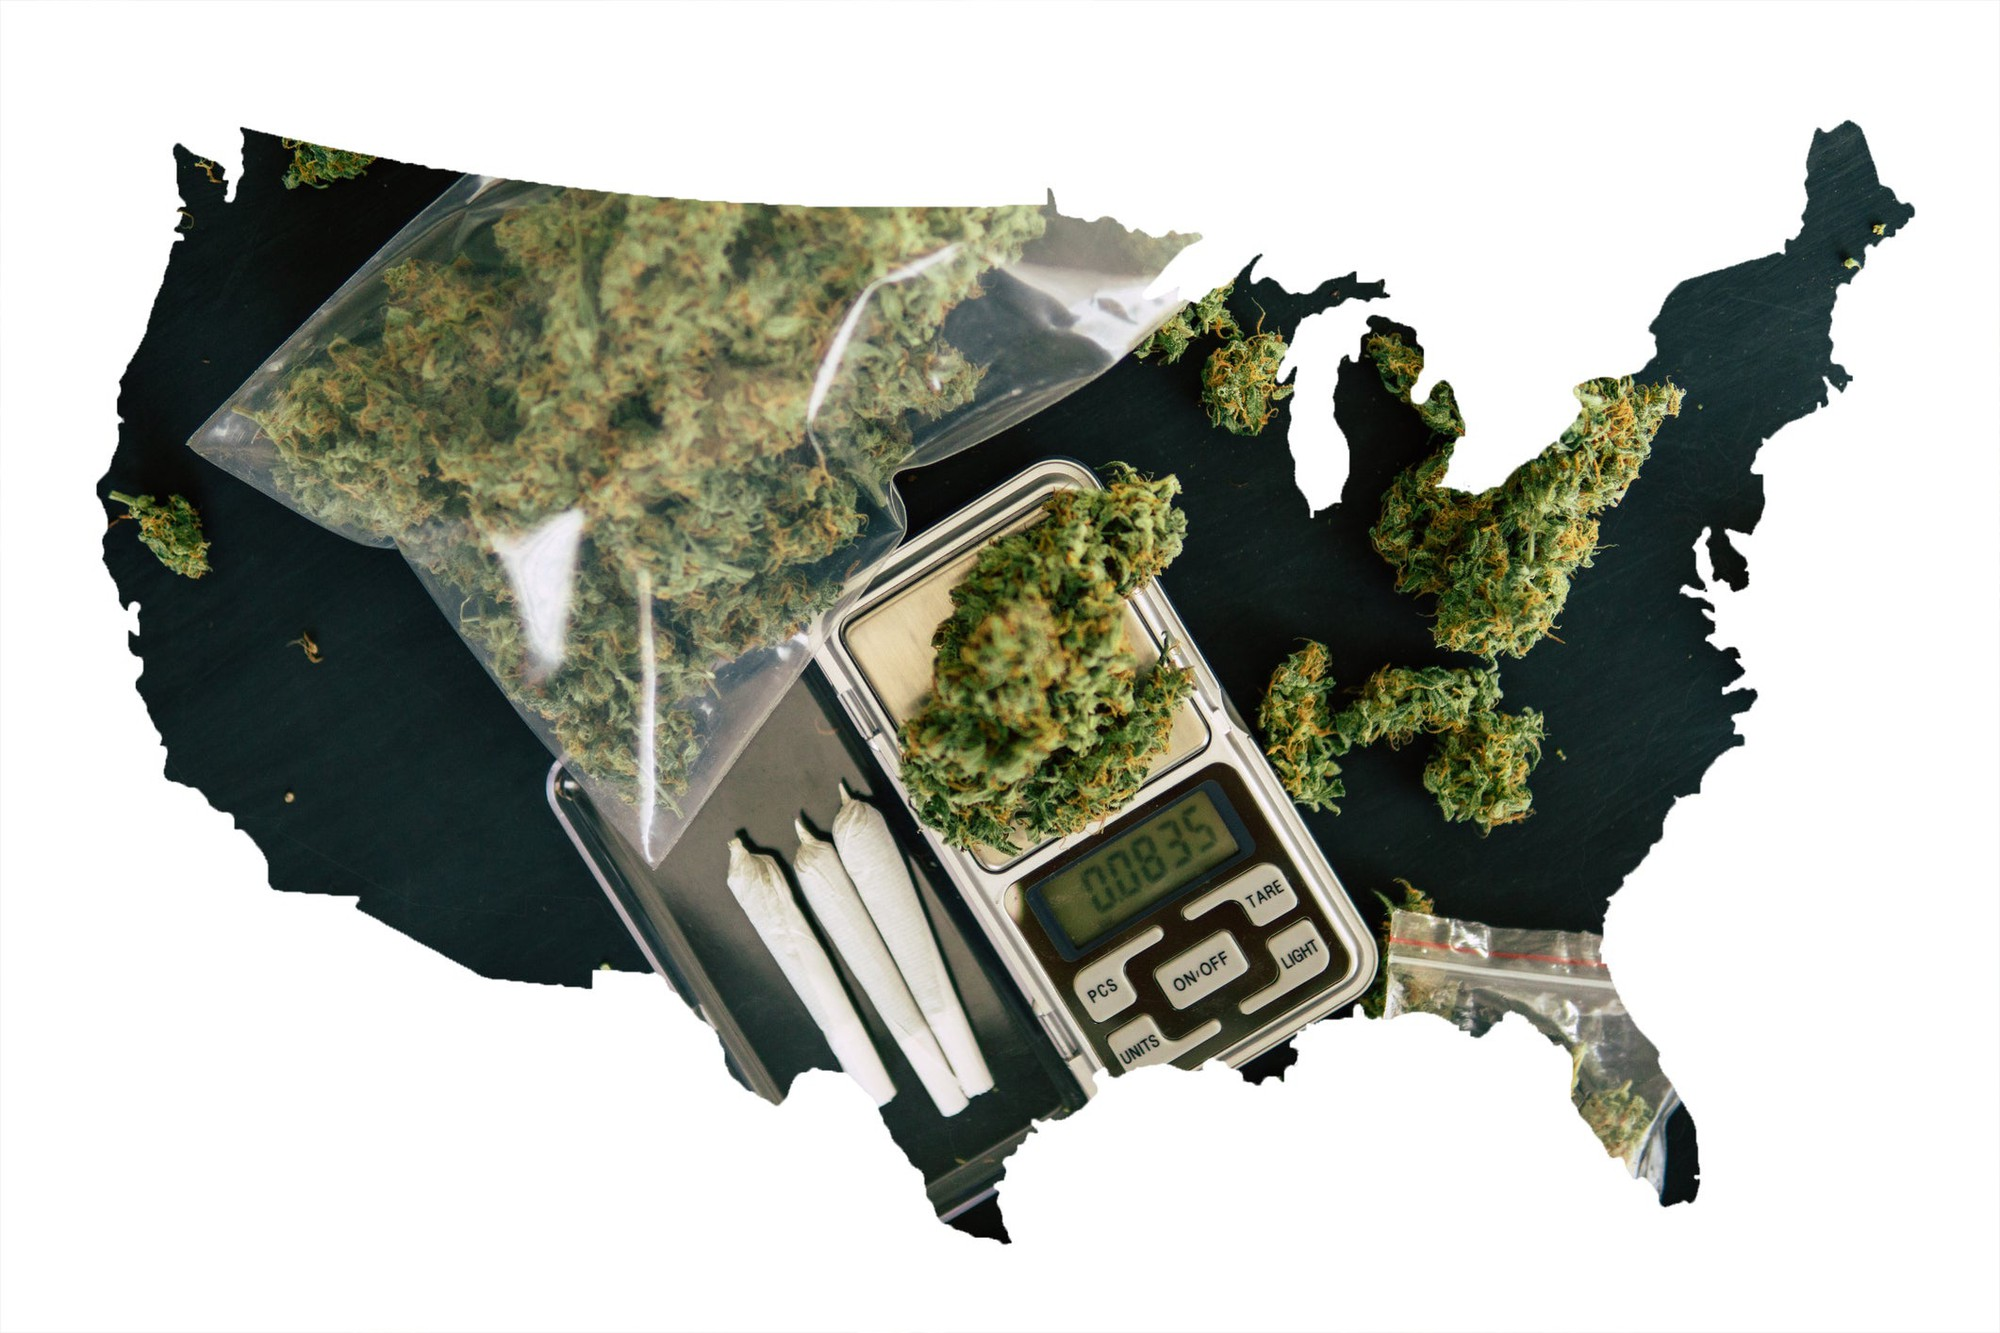 The Surprising Reason the U.S. May Be Reluctant to Legalize Marijuana